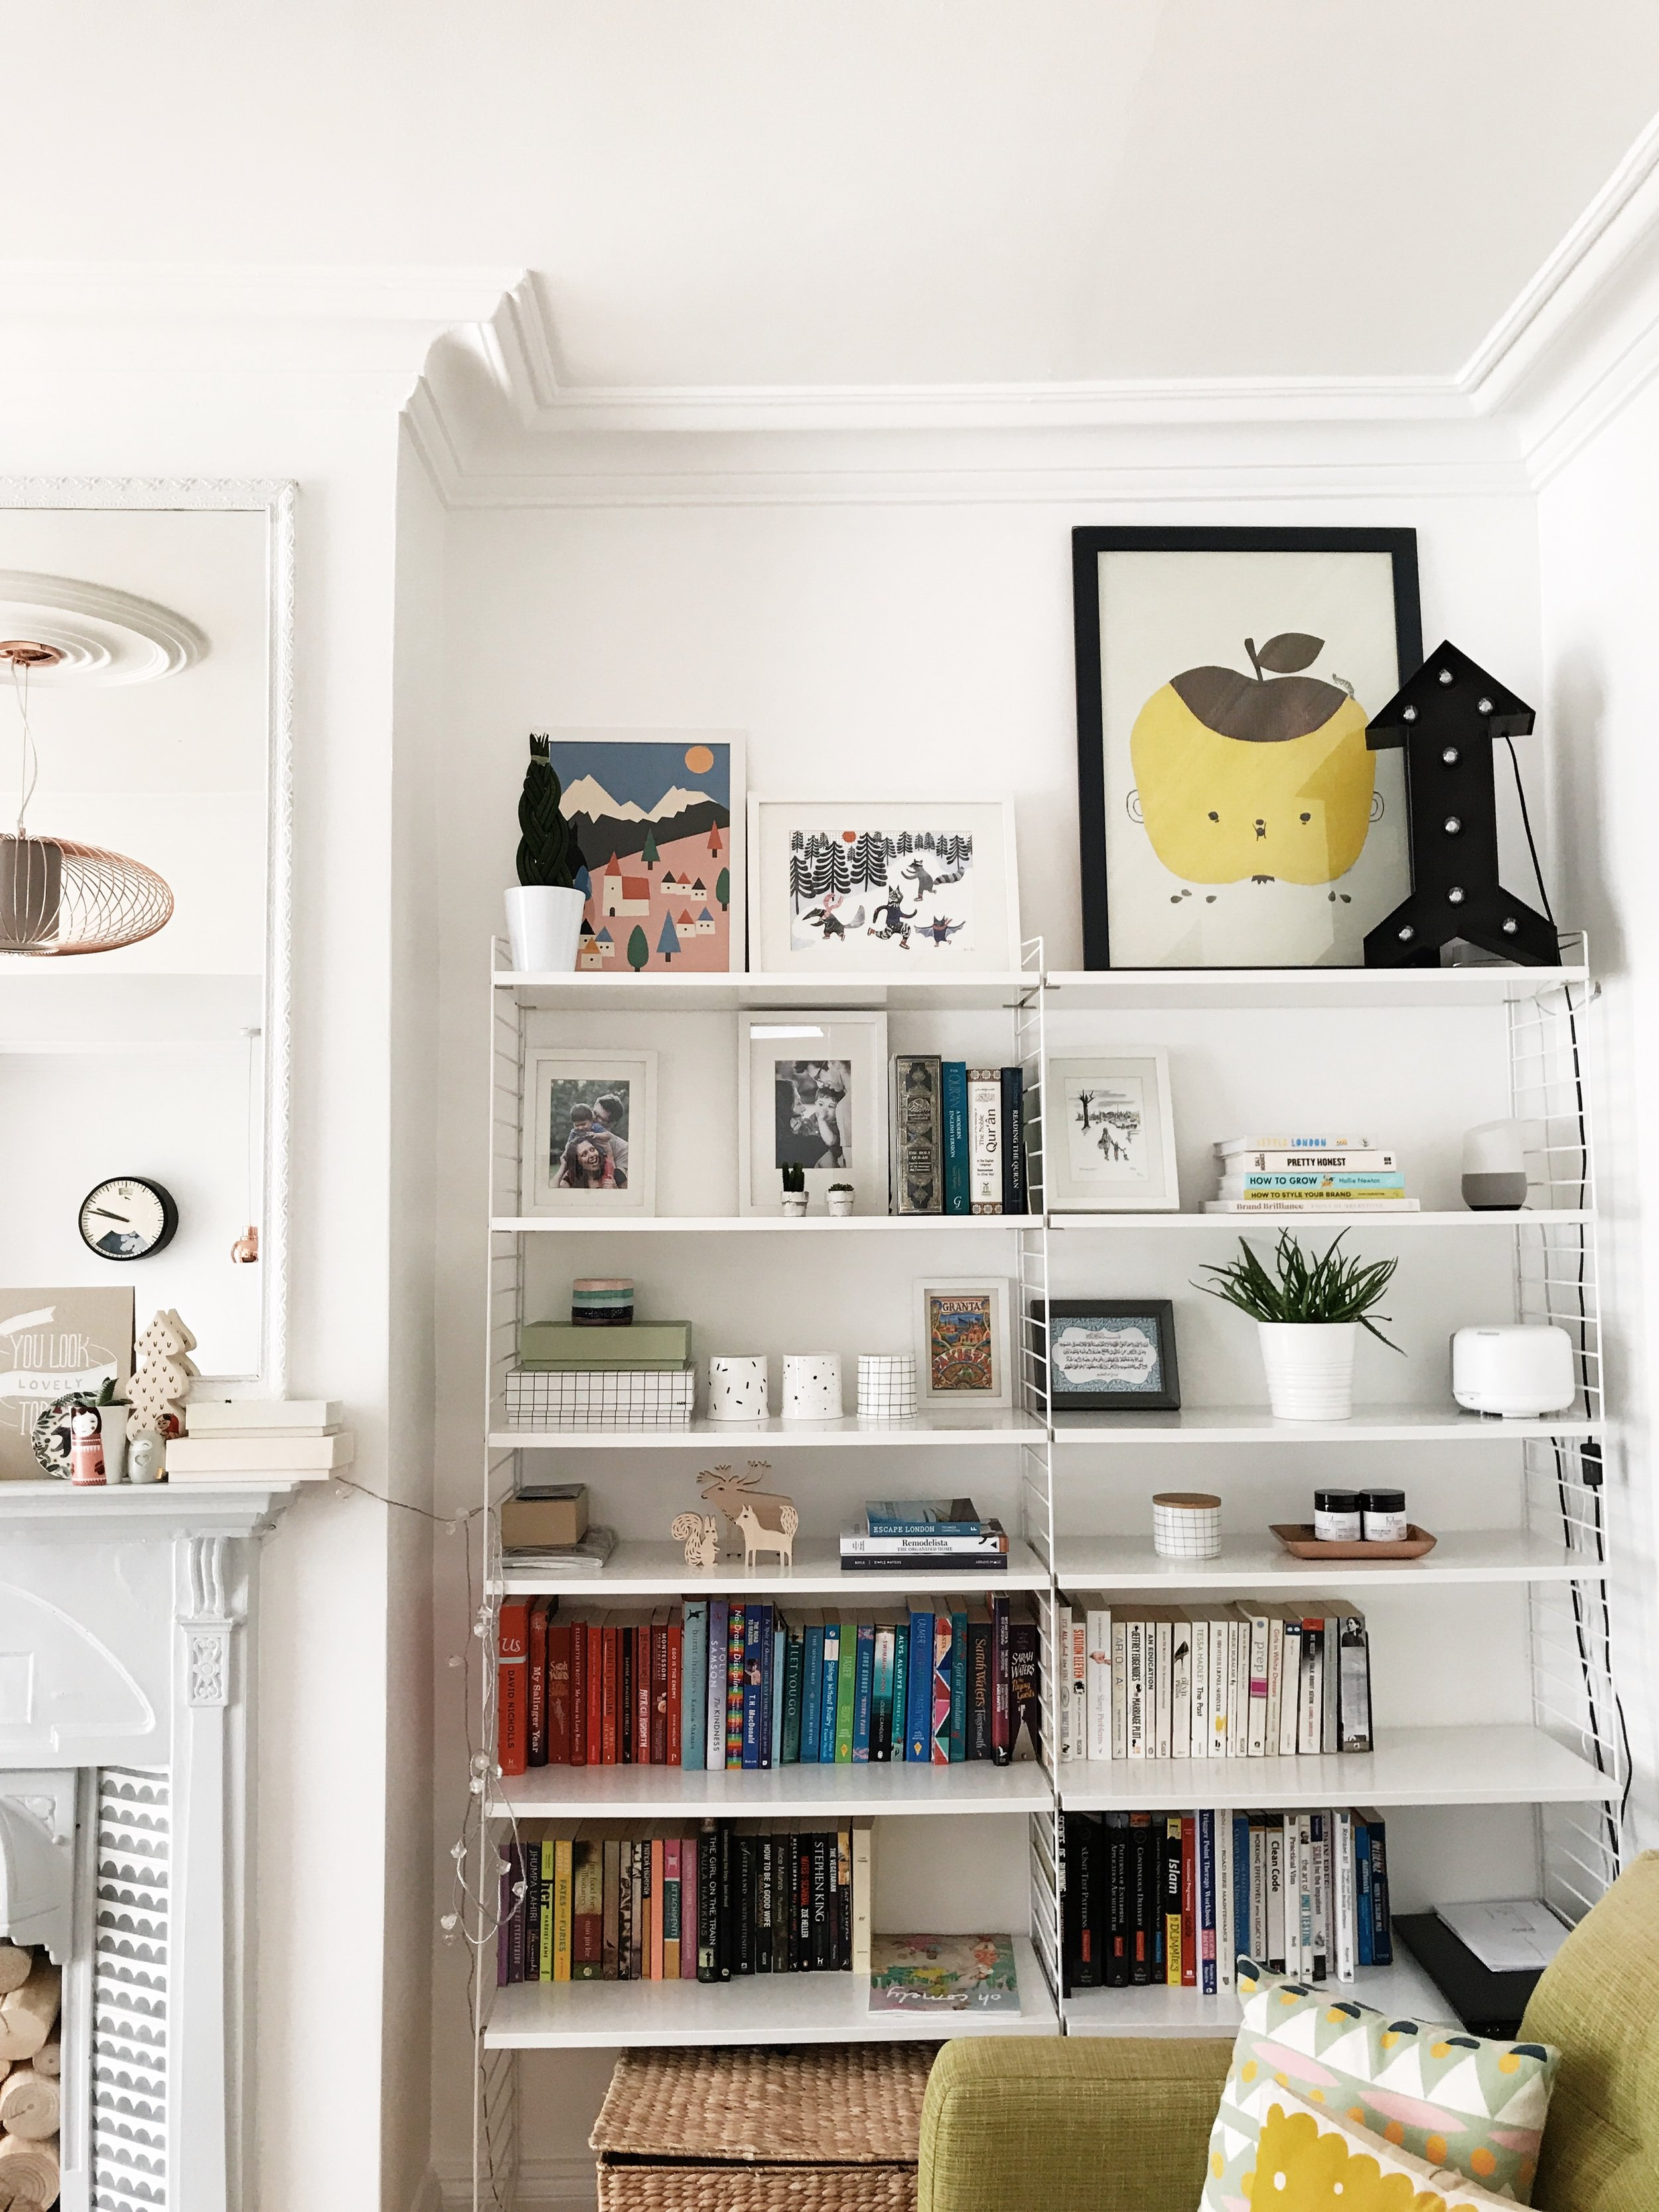 How To Style Open Shelves Our Story Time